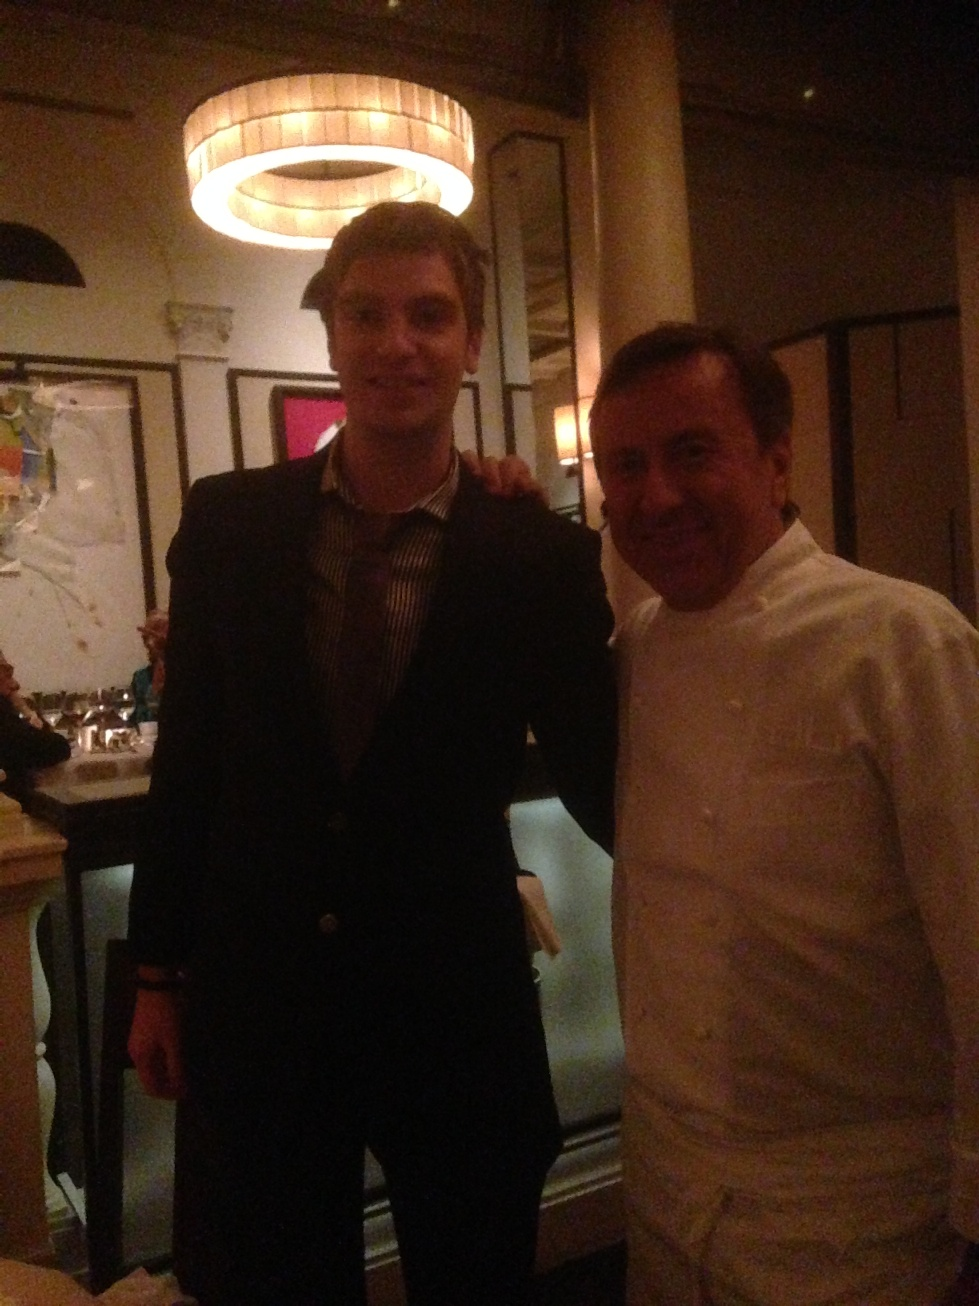 James Goodyear 2013 with Daniel Boulud